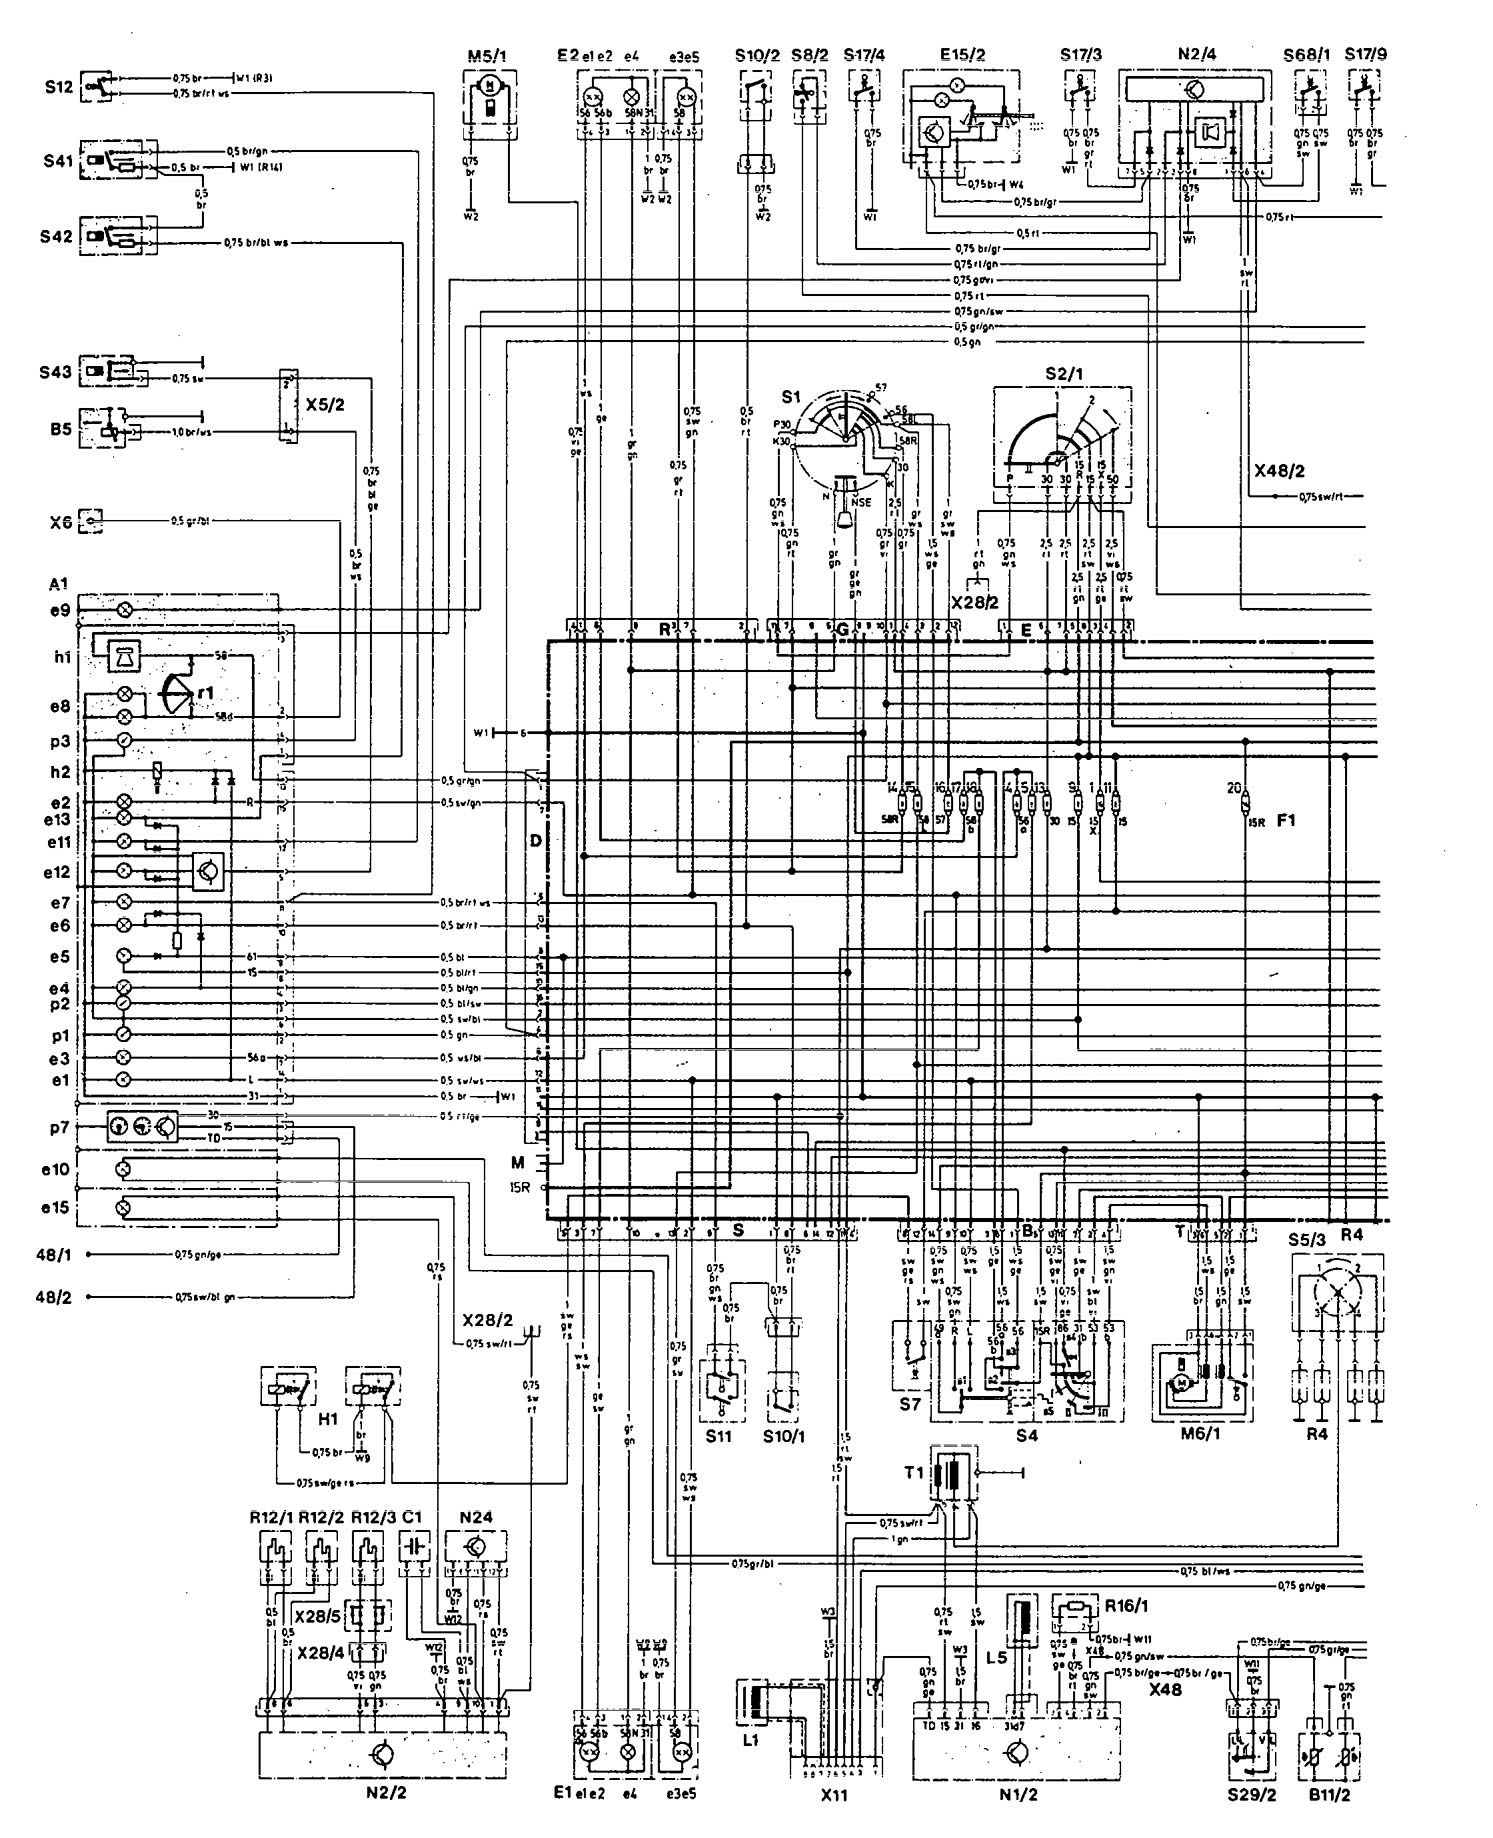 mercedes-benz-190e-wiring-diagram-ignition-1-1992 W Ac Wiring Diagram on w124 wheels, w124 exhaust, w124 headlights, w124 suspension, w124 parts, w124 engine,